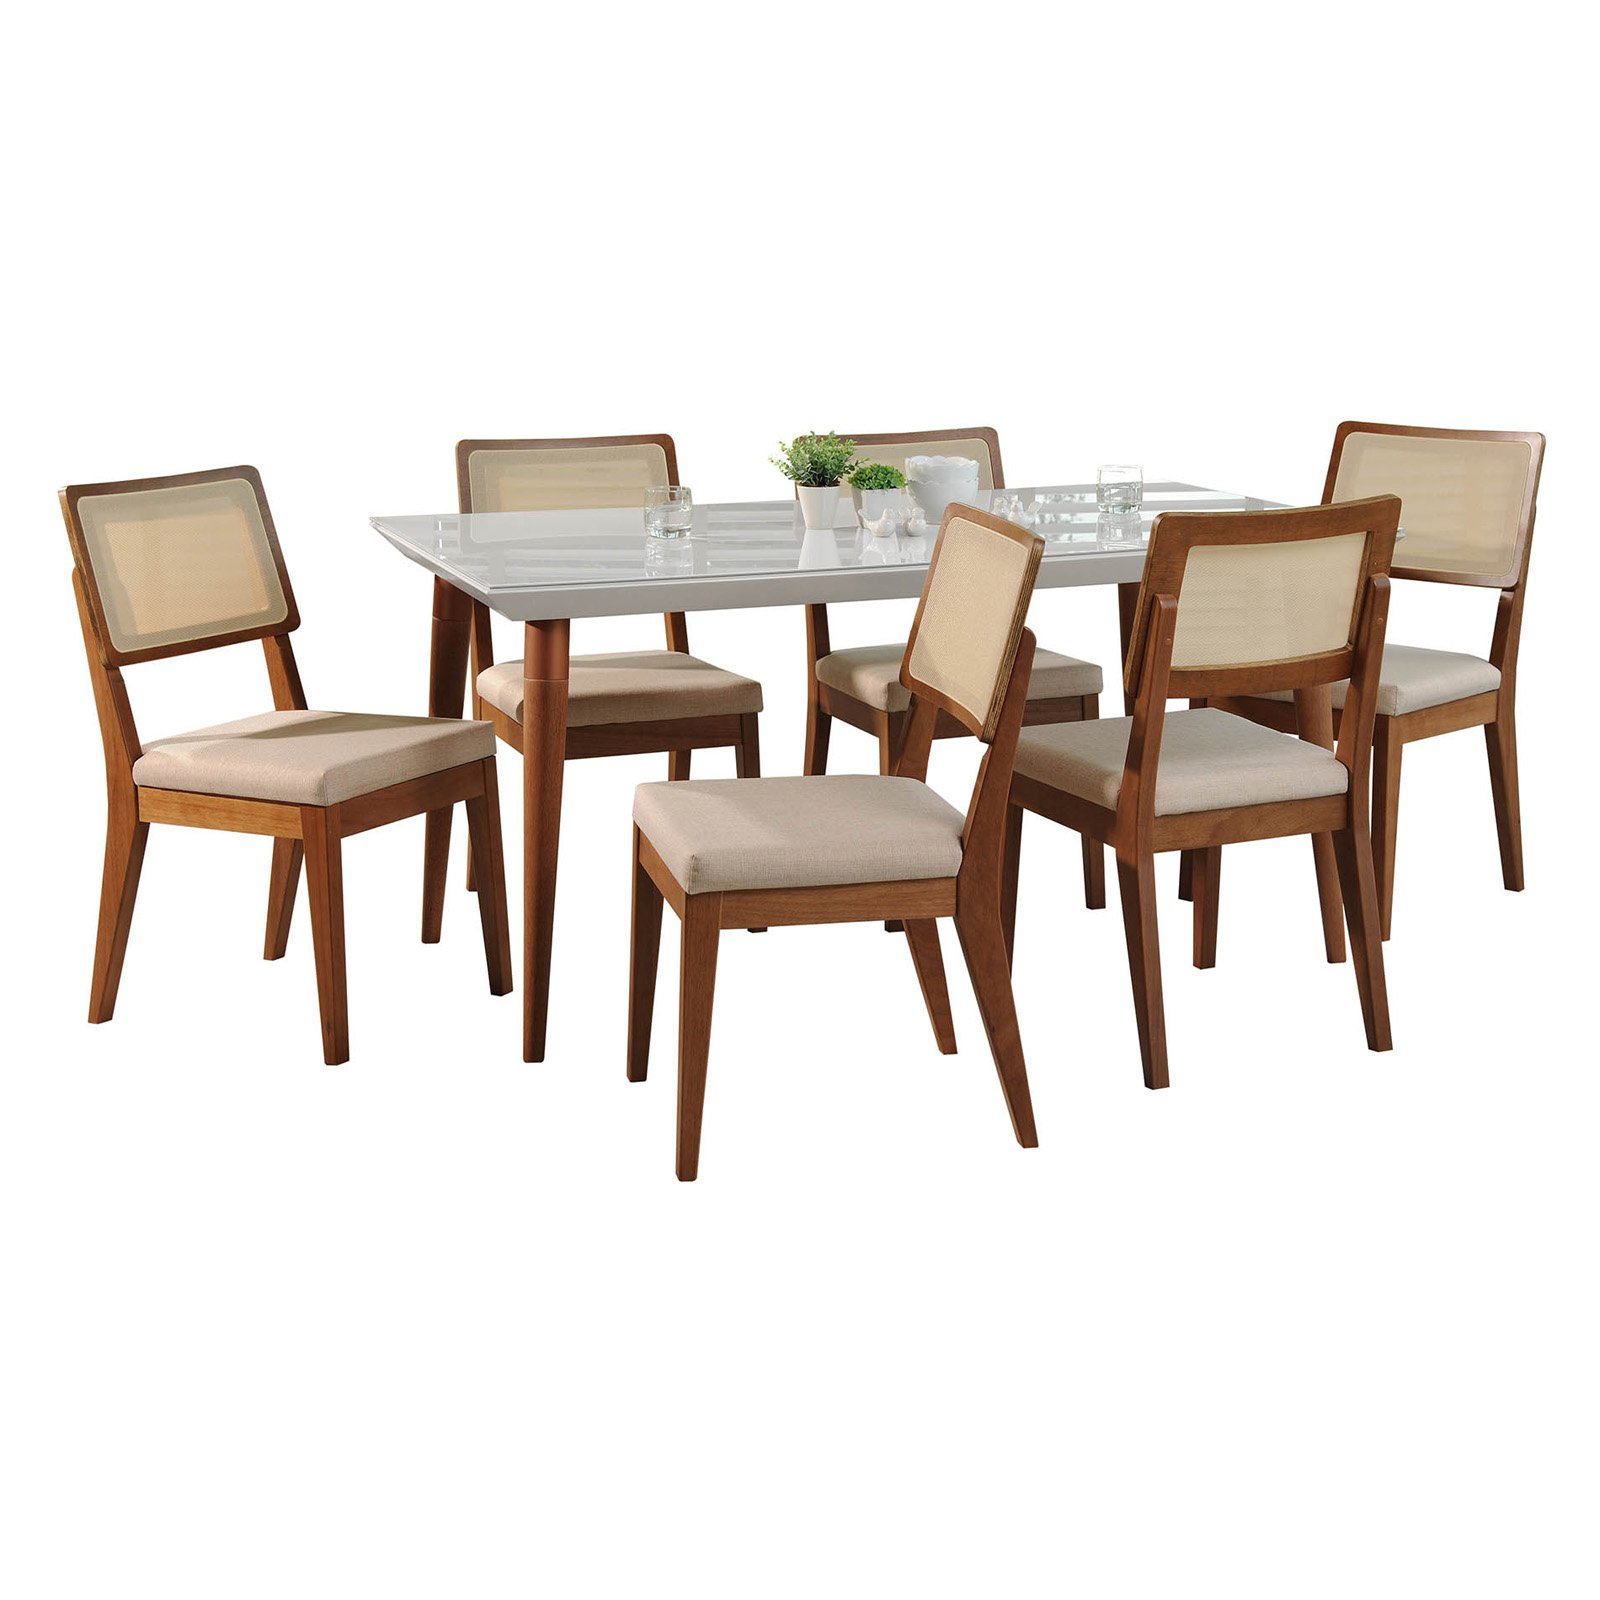 Manhattan Comfort Utopia and Pell 7 Piece Dining Table Set